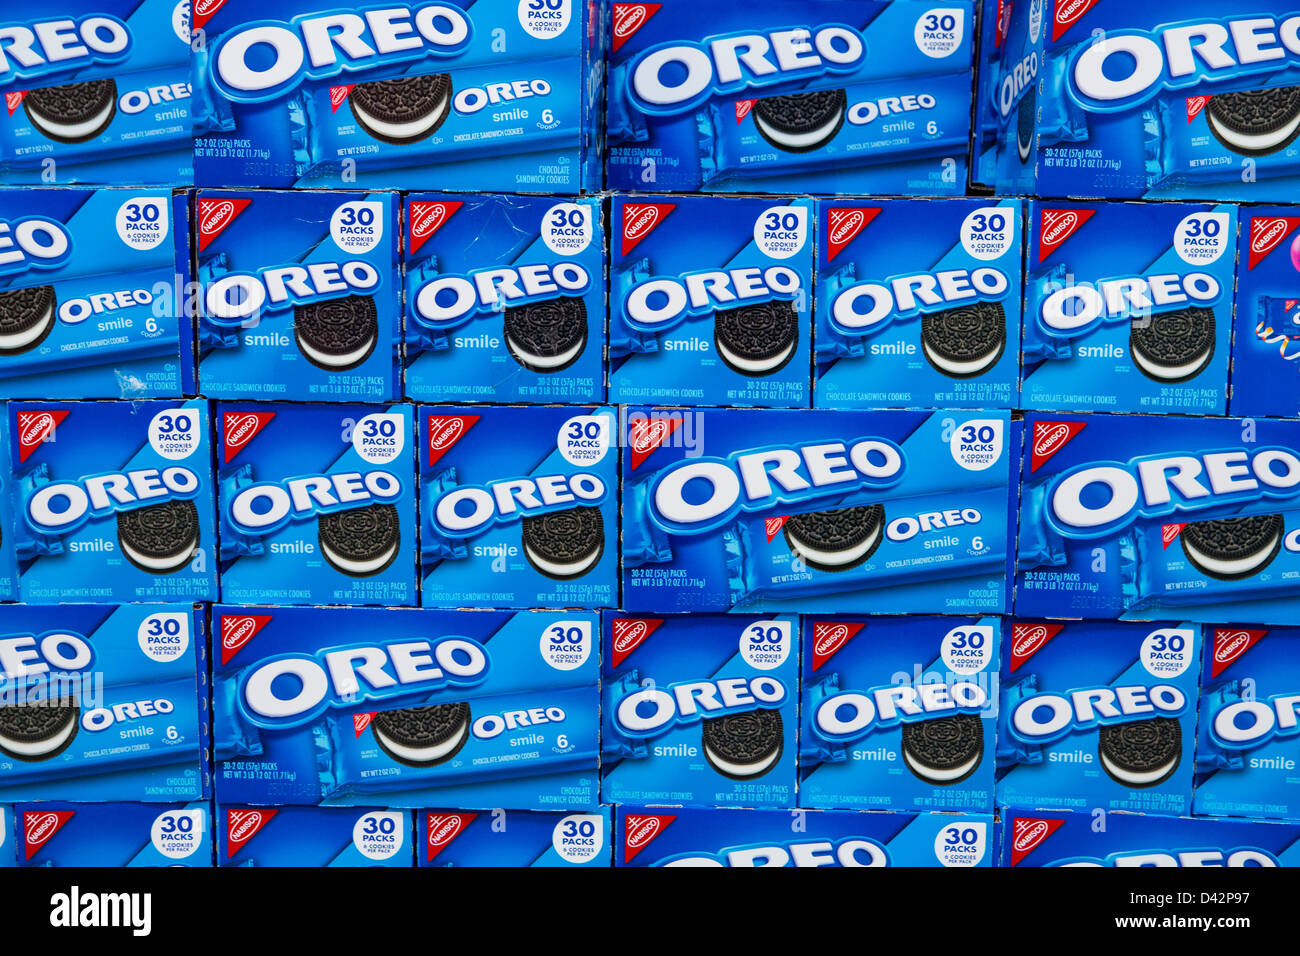 Oreo cookies on display at a costco wholesale warehouse club stock oreo cookies on display at a costco wholesale warehouse club stock photo 54151139 alamy thecheapjerseys Images